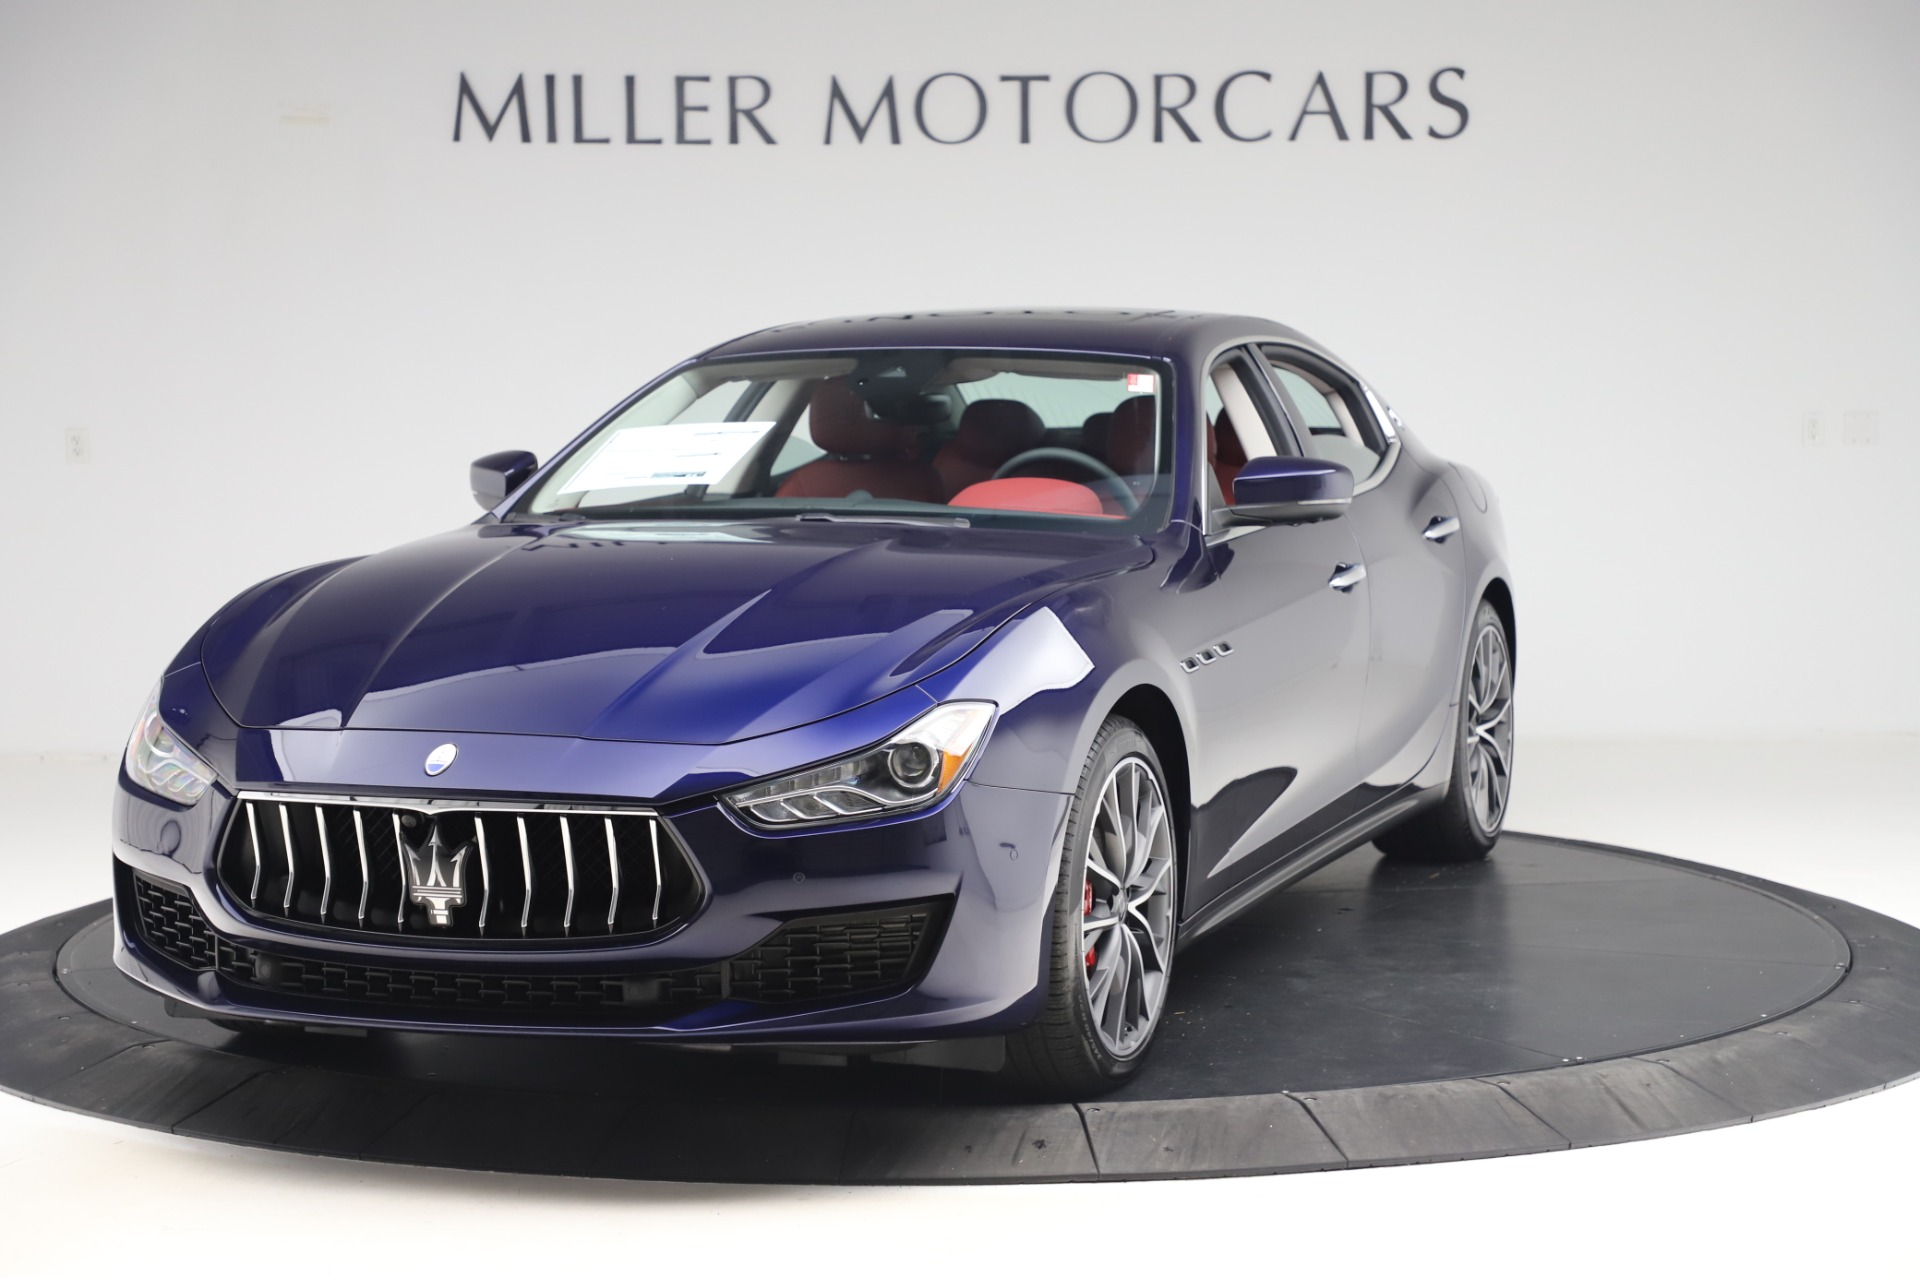 New 2020 Maserati Ghibli S Q4 for sale Sold at Bentley Greenwich in Greenwich CT 06830 1